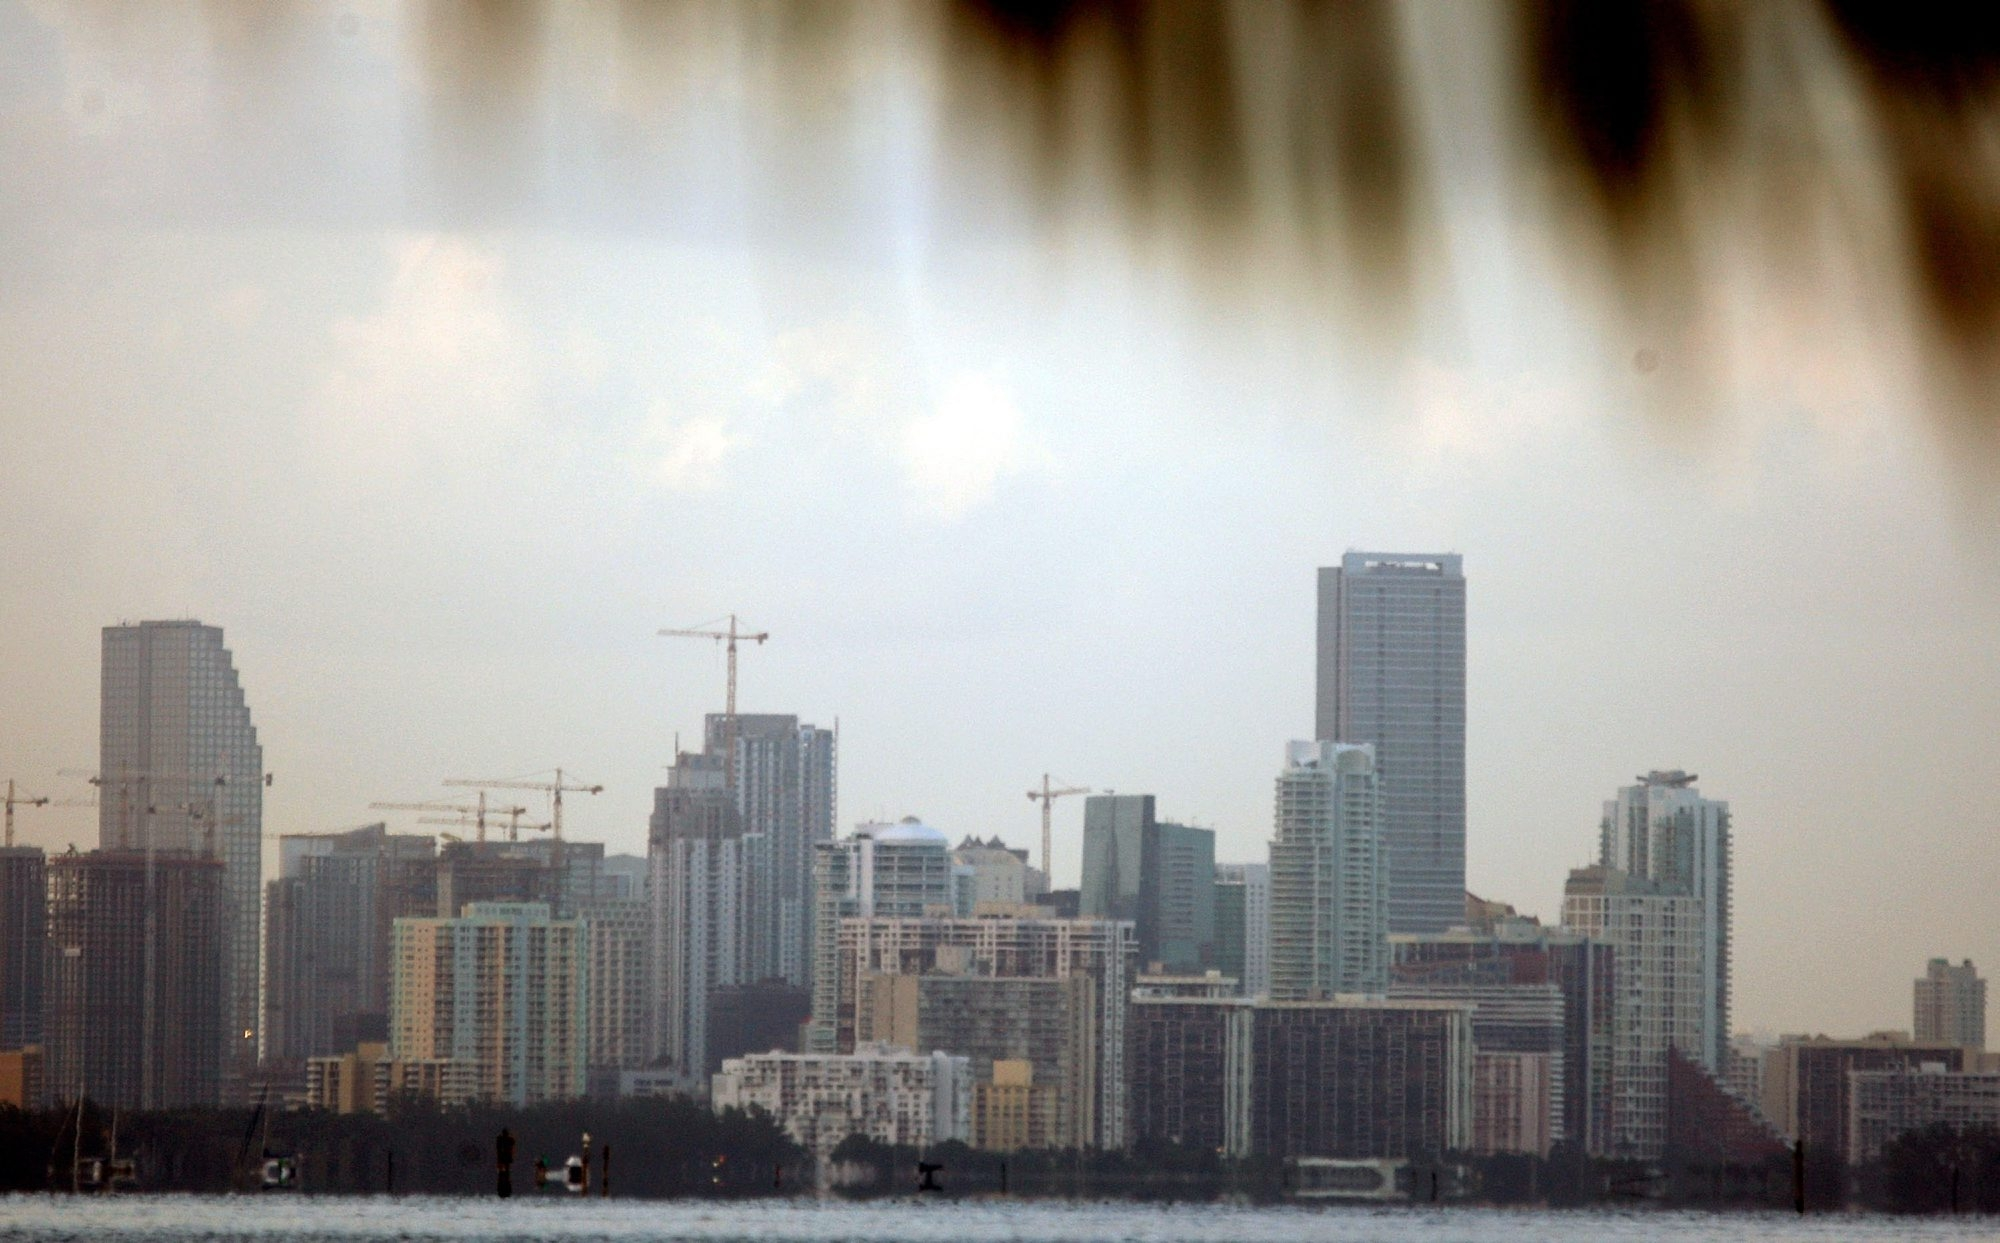 The fronds of a palm tree frame the city of Miami, Fla., as seen through a slight haze. Census estimates to be released Monday will likely show Florida and New York are narrowly separated, perhaps by as little as a few thousand people.